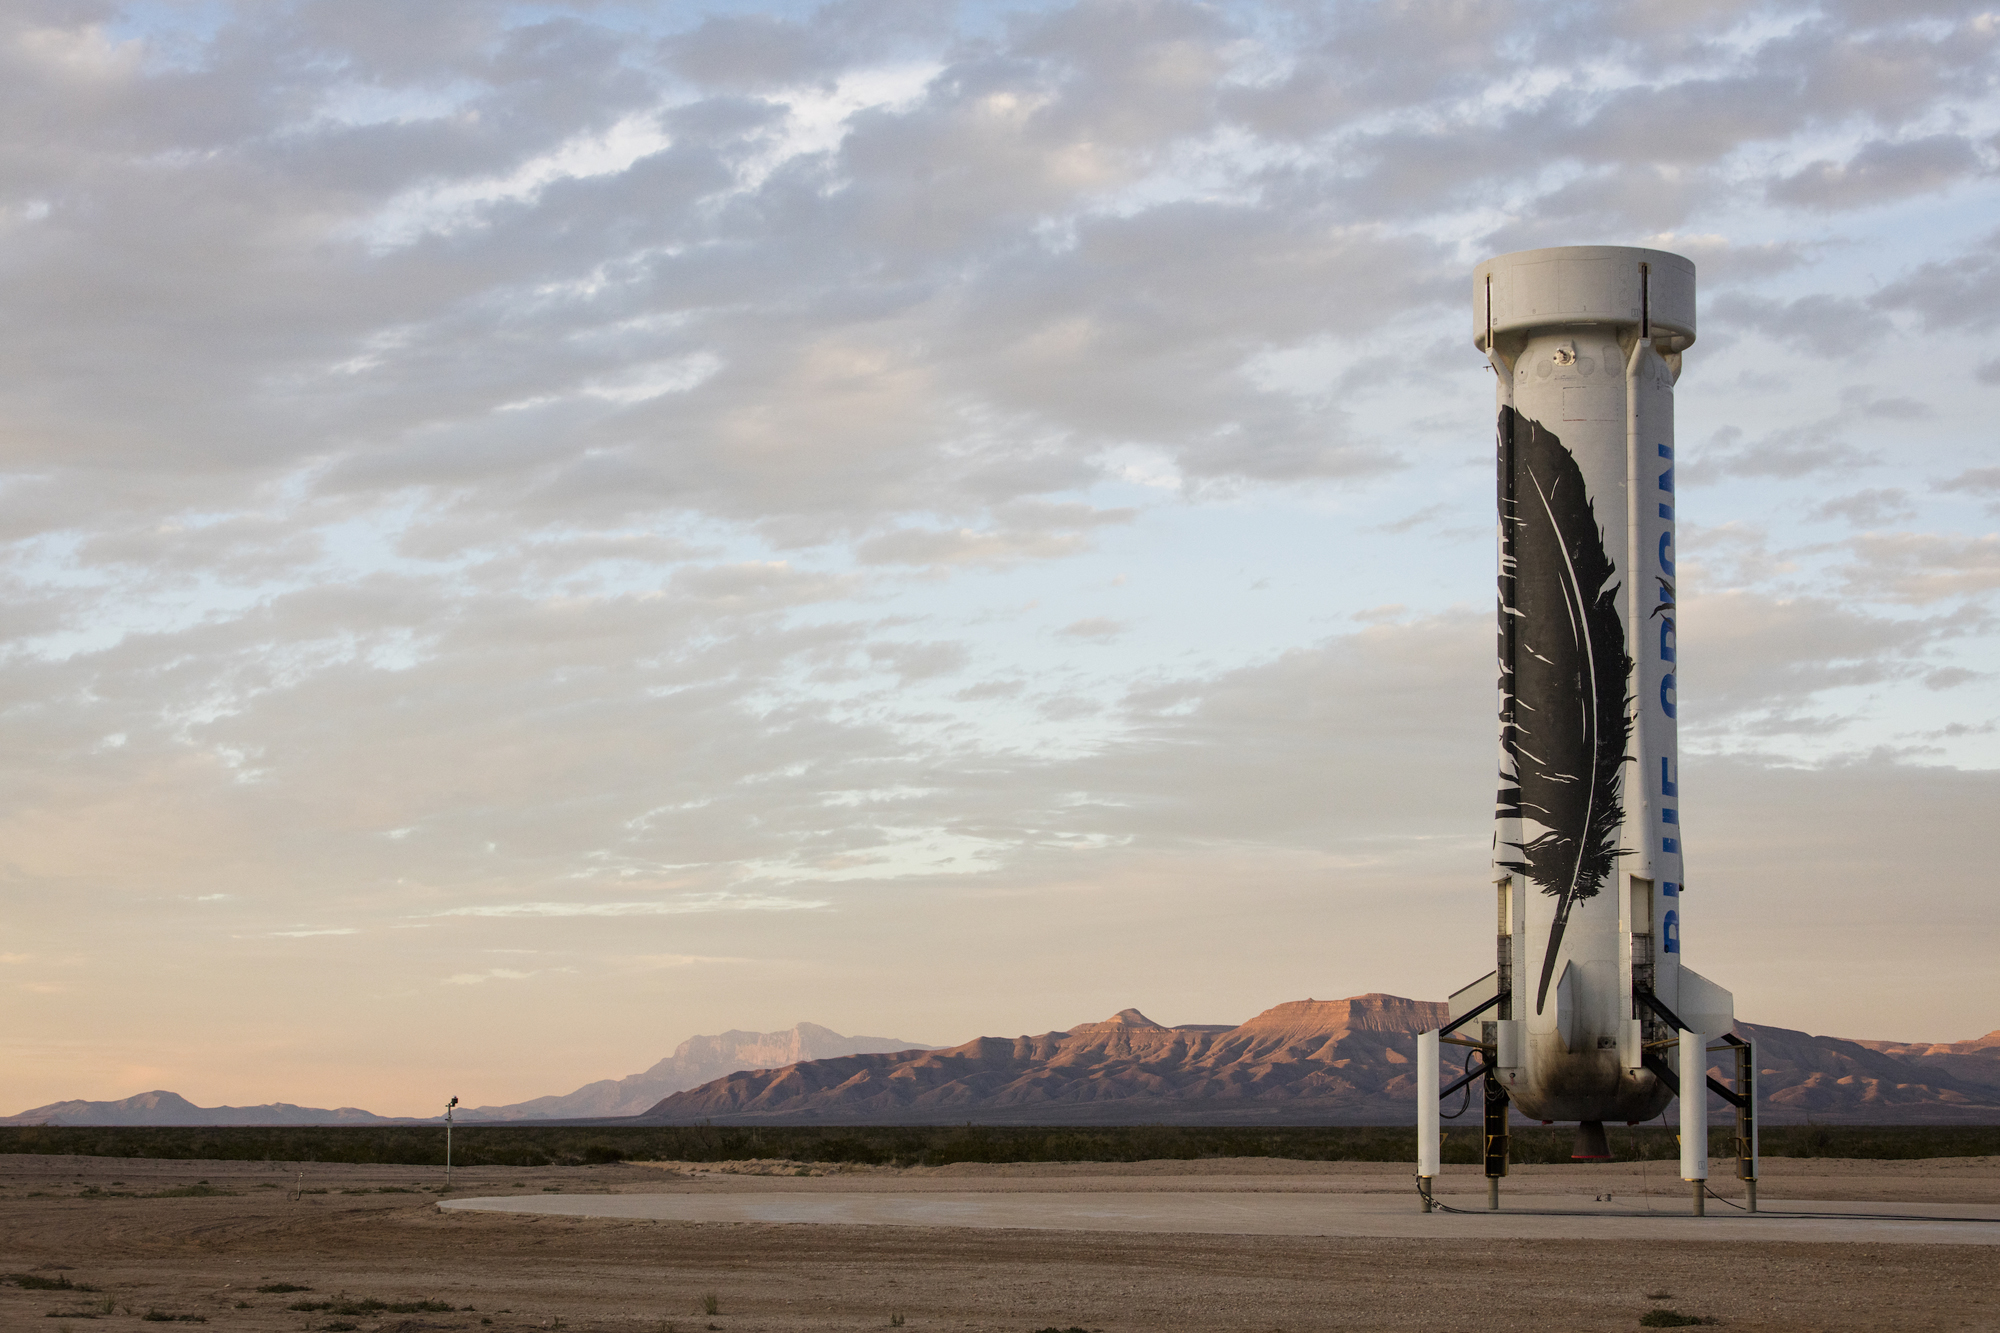 Blue Origin New Shepard Rocket Landing